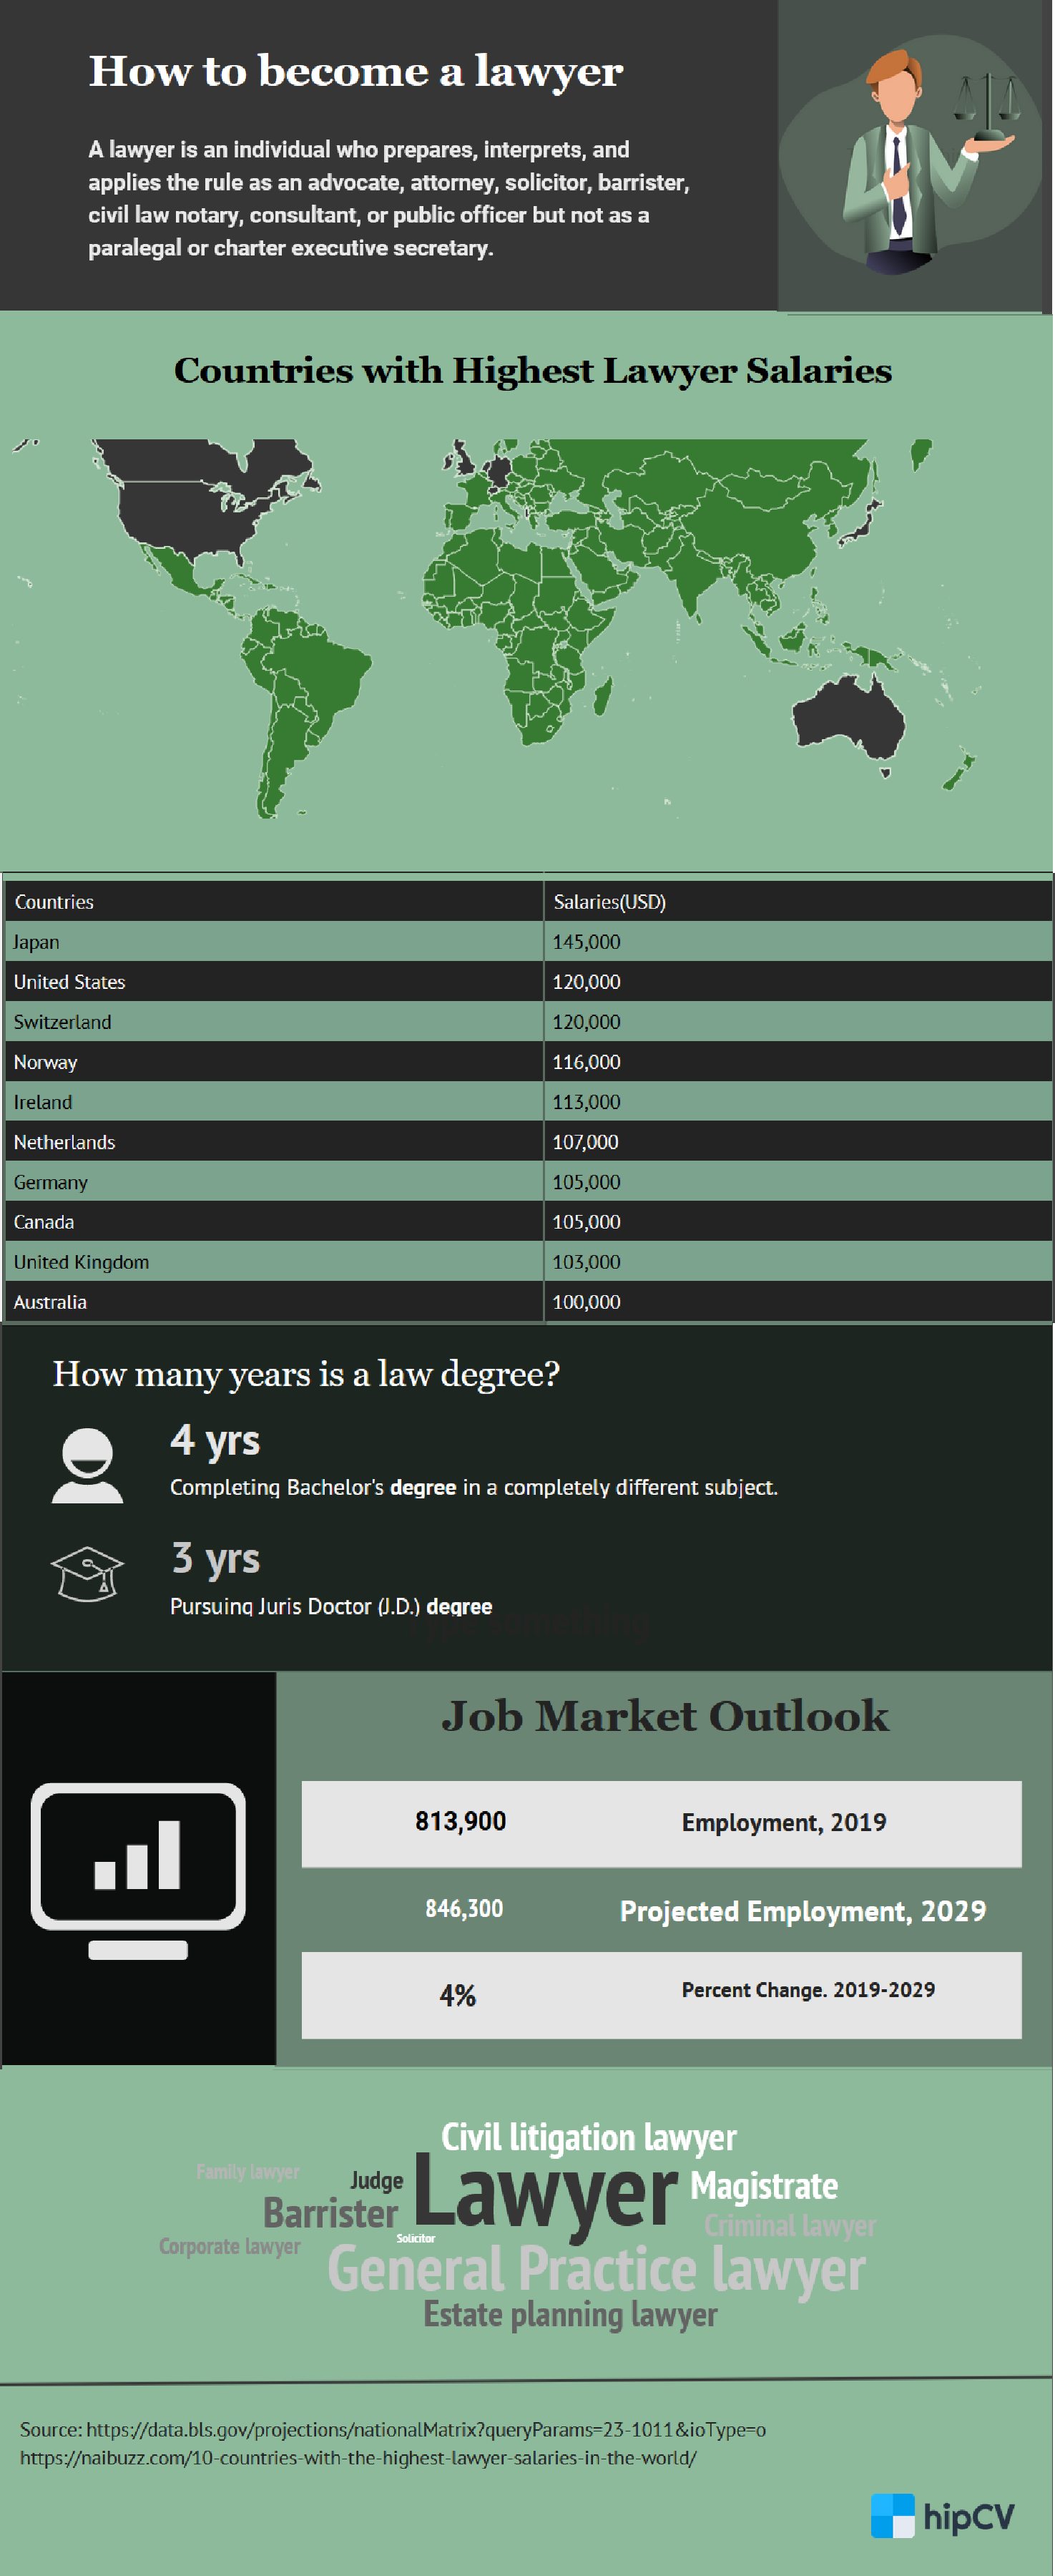 Image for part: Job Prospects and Market Outlook